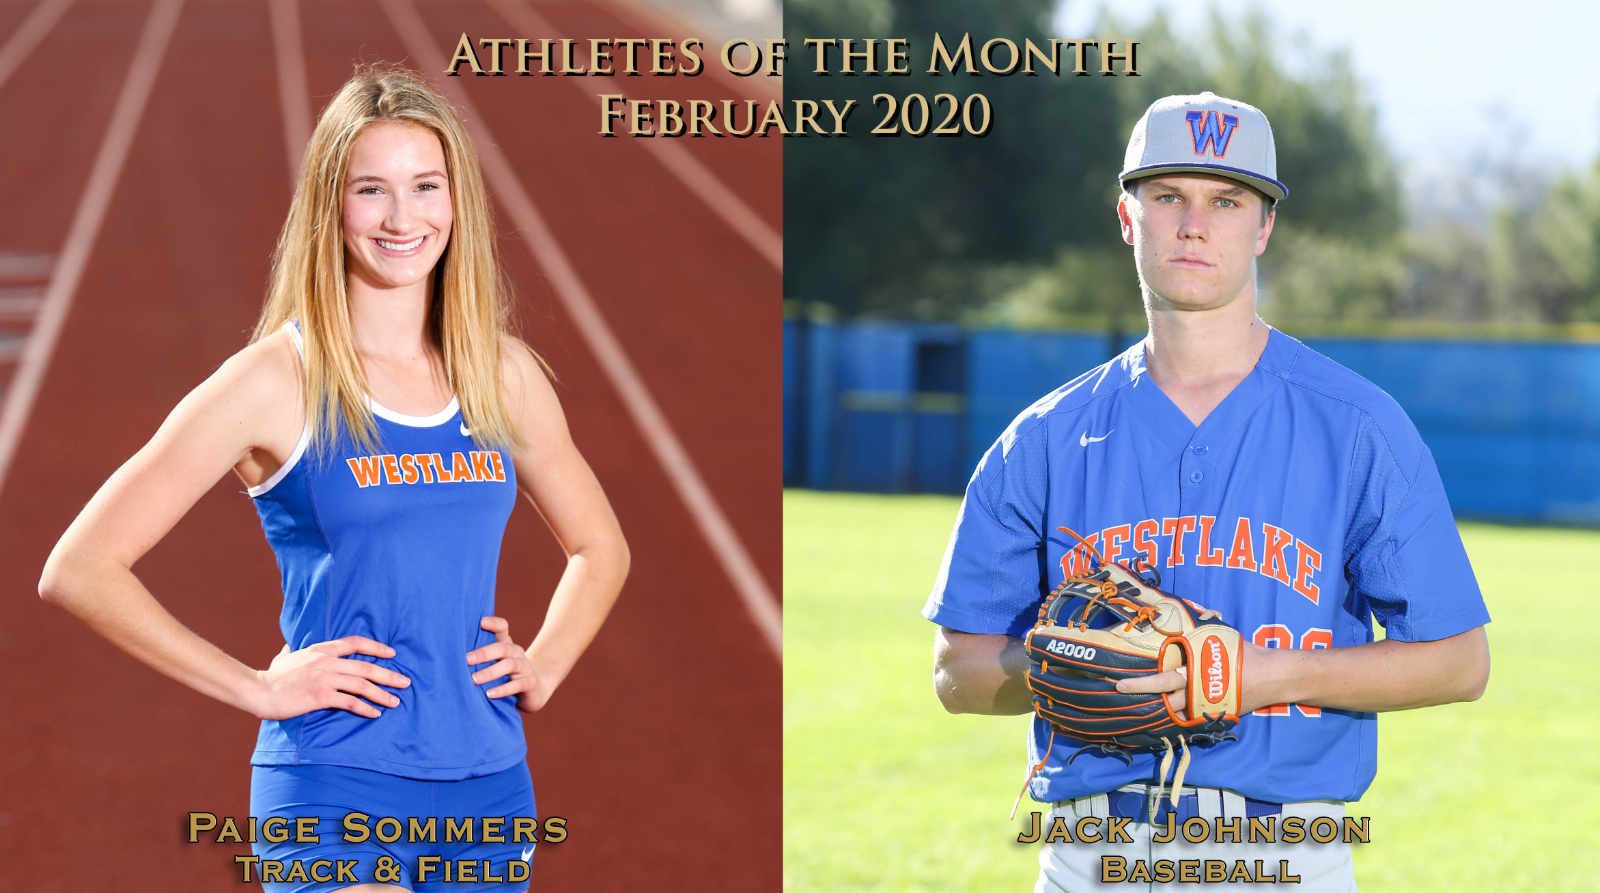 Sommers, Johnson named Athletes of the Month for February